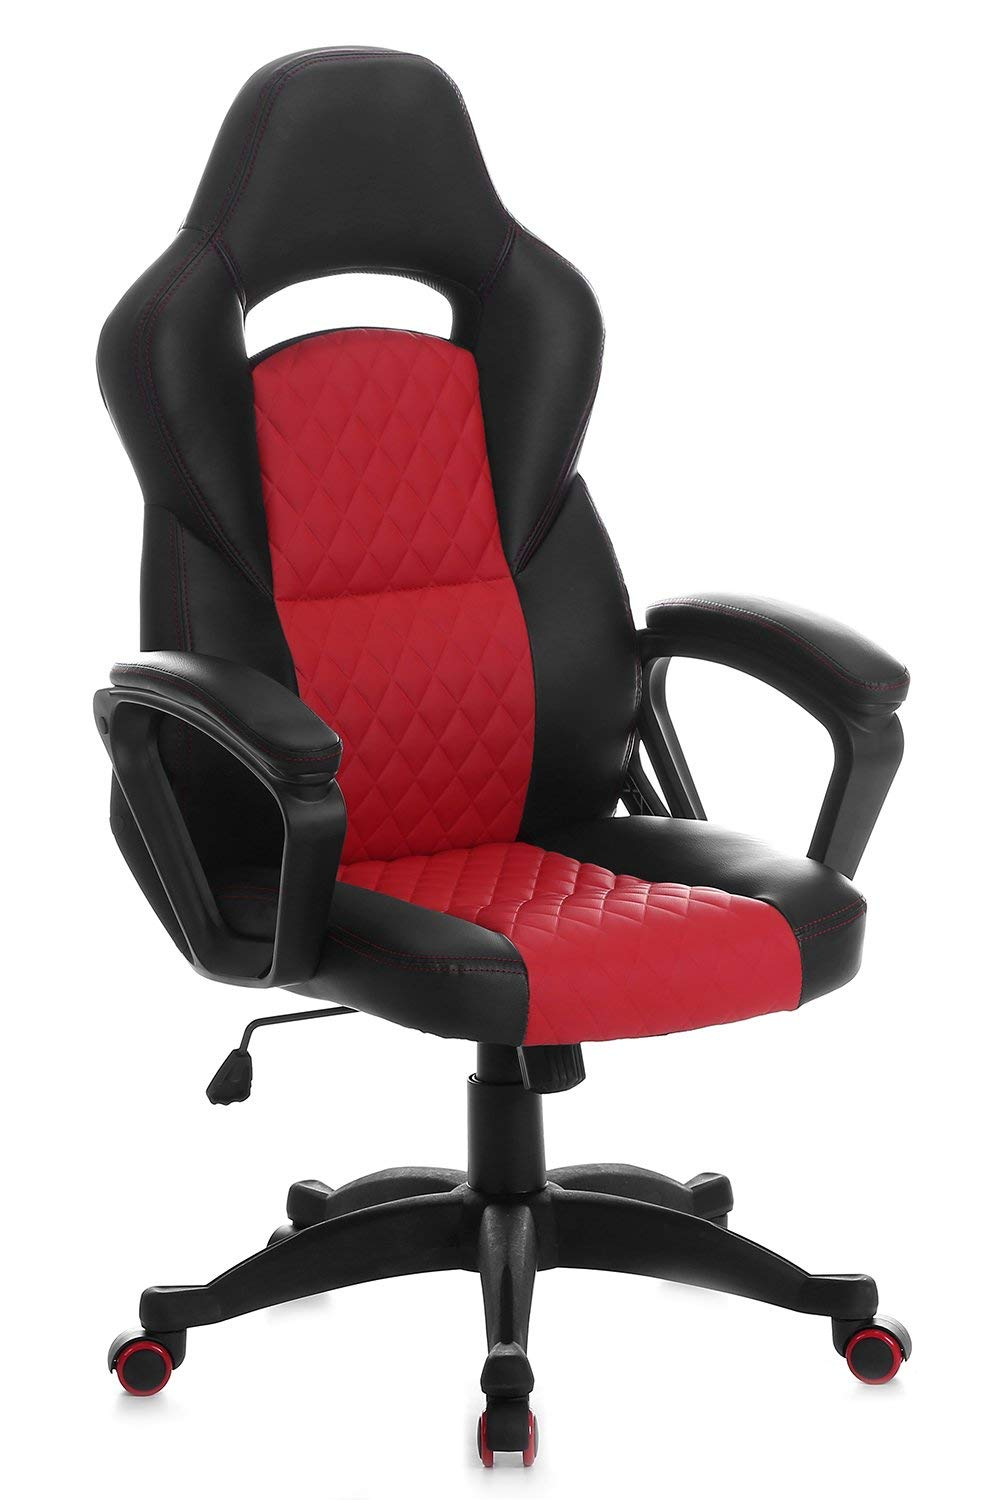 SEATZONE Upgraded Edition Leather Gaming Chair, Racing Style Large Bucket Seat Computer Desk Chair, Executive Office Swivel Chair with Curved Back, Red